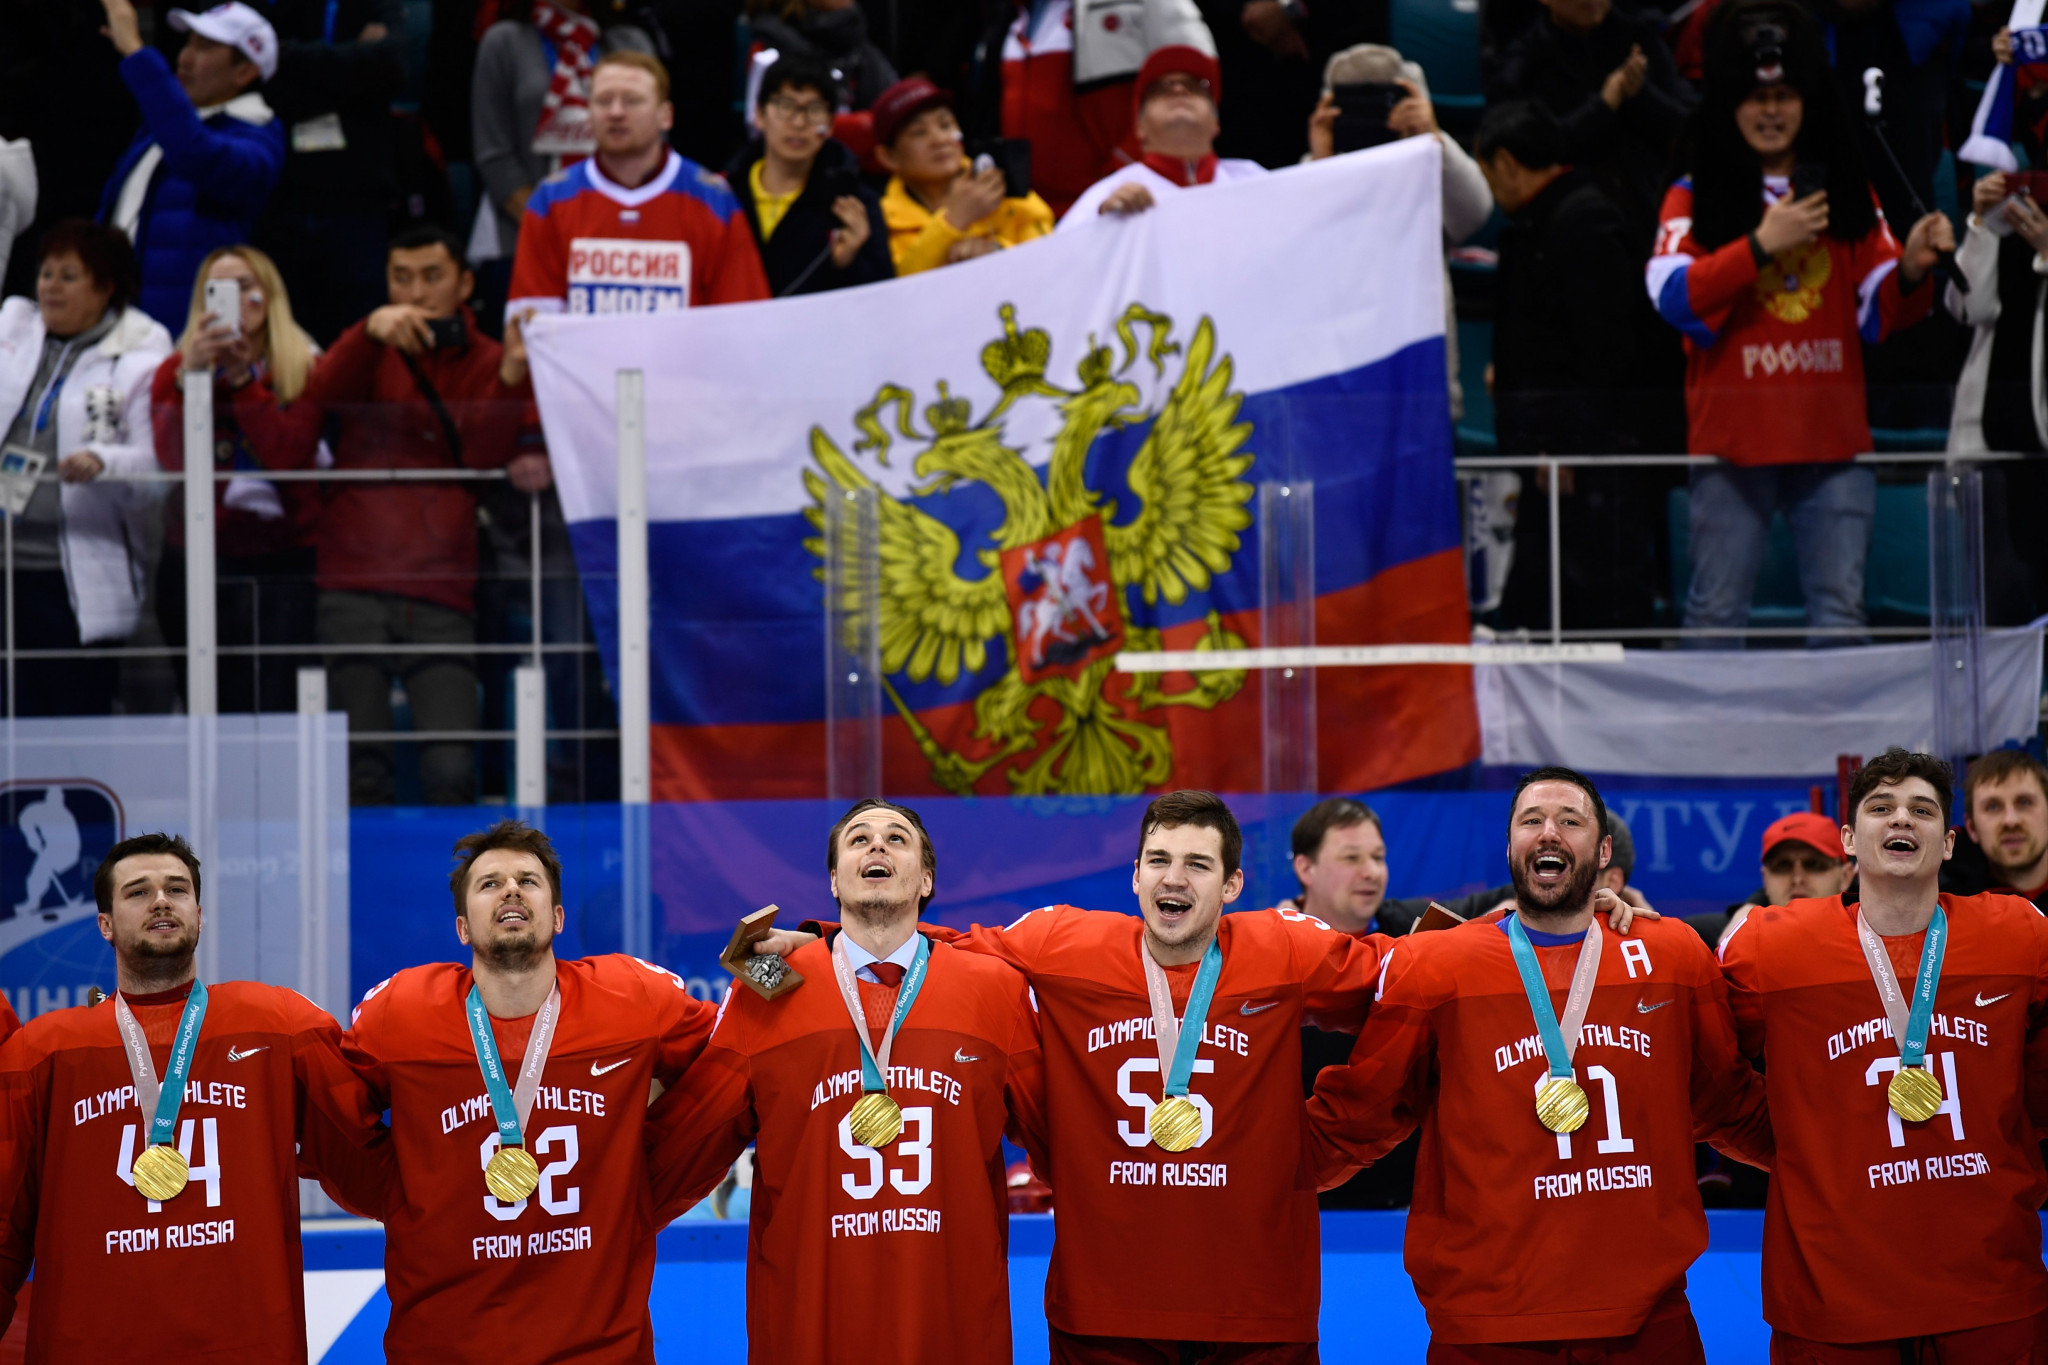 The OAR's players sung the Russian national anthem after receiving their gold medals ©Getty Images